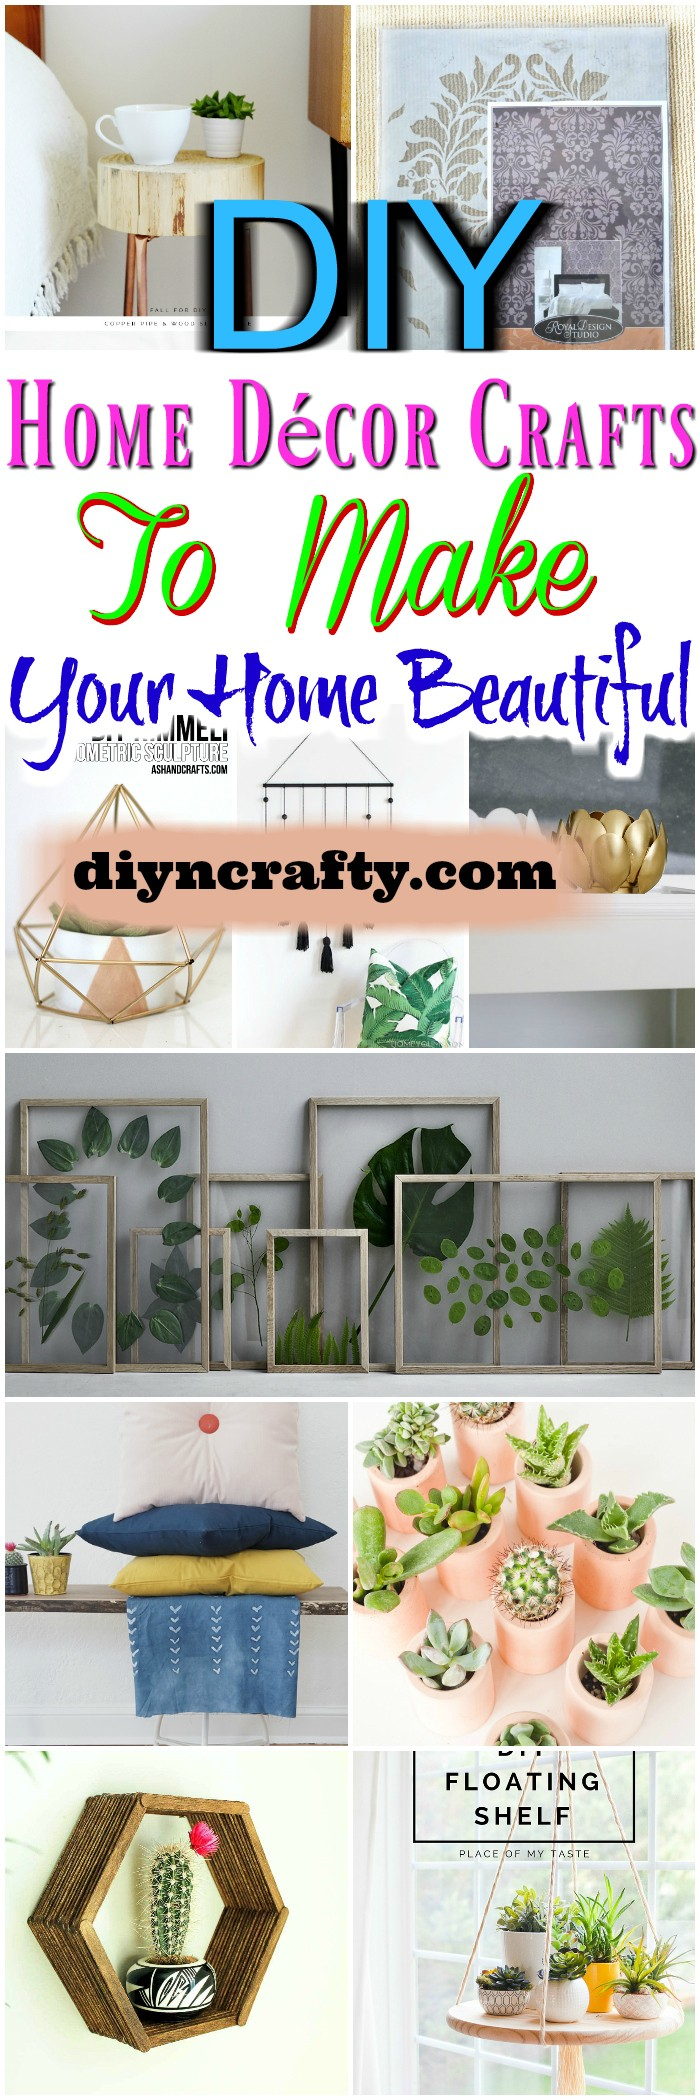 Diy home d cor crafts to make your home beautiful diy for Home crafts to make